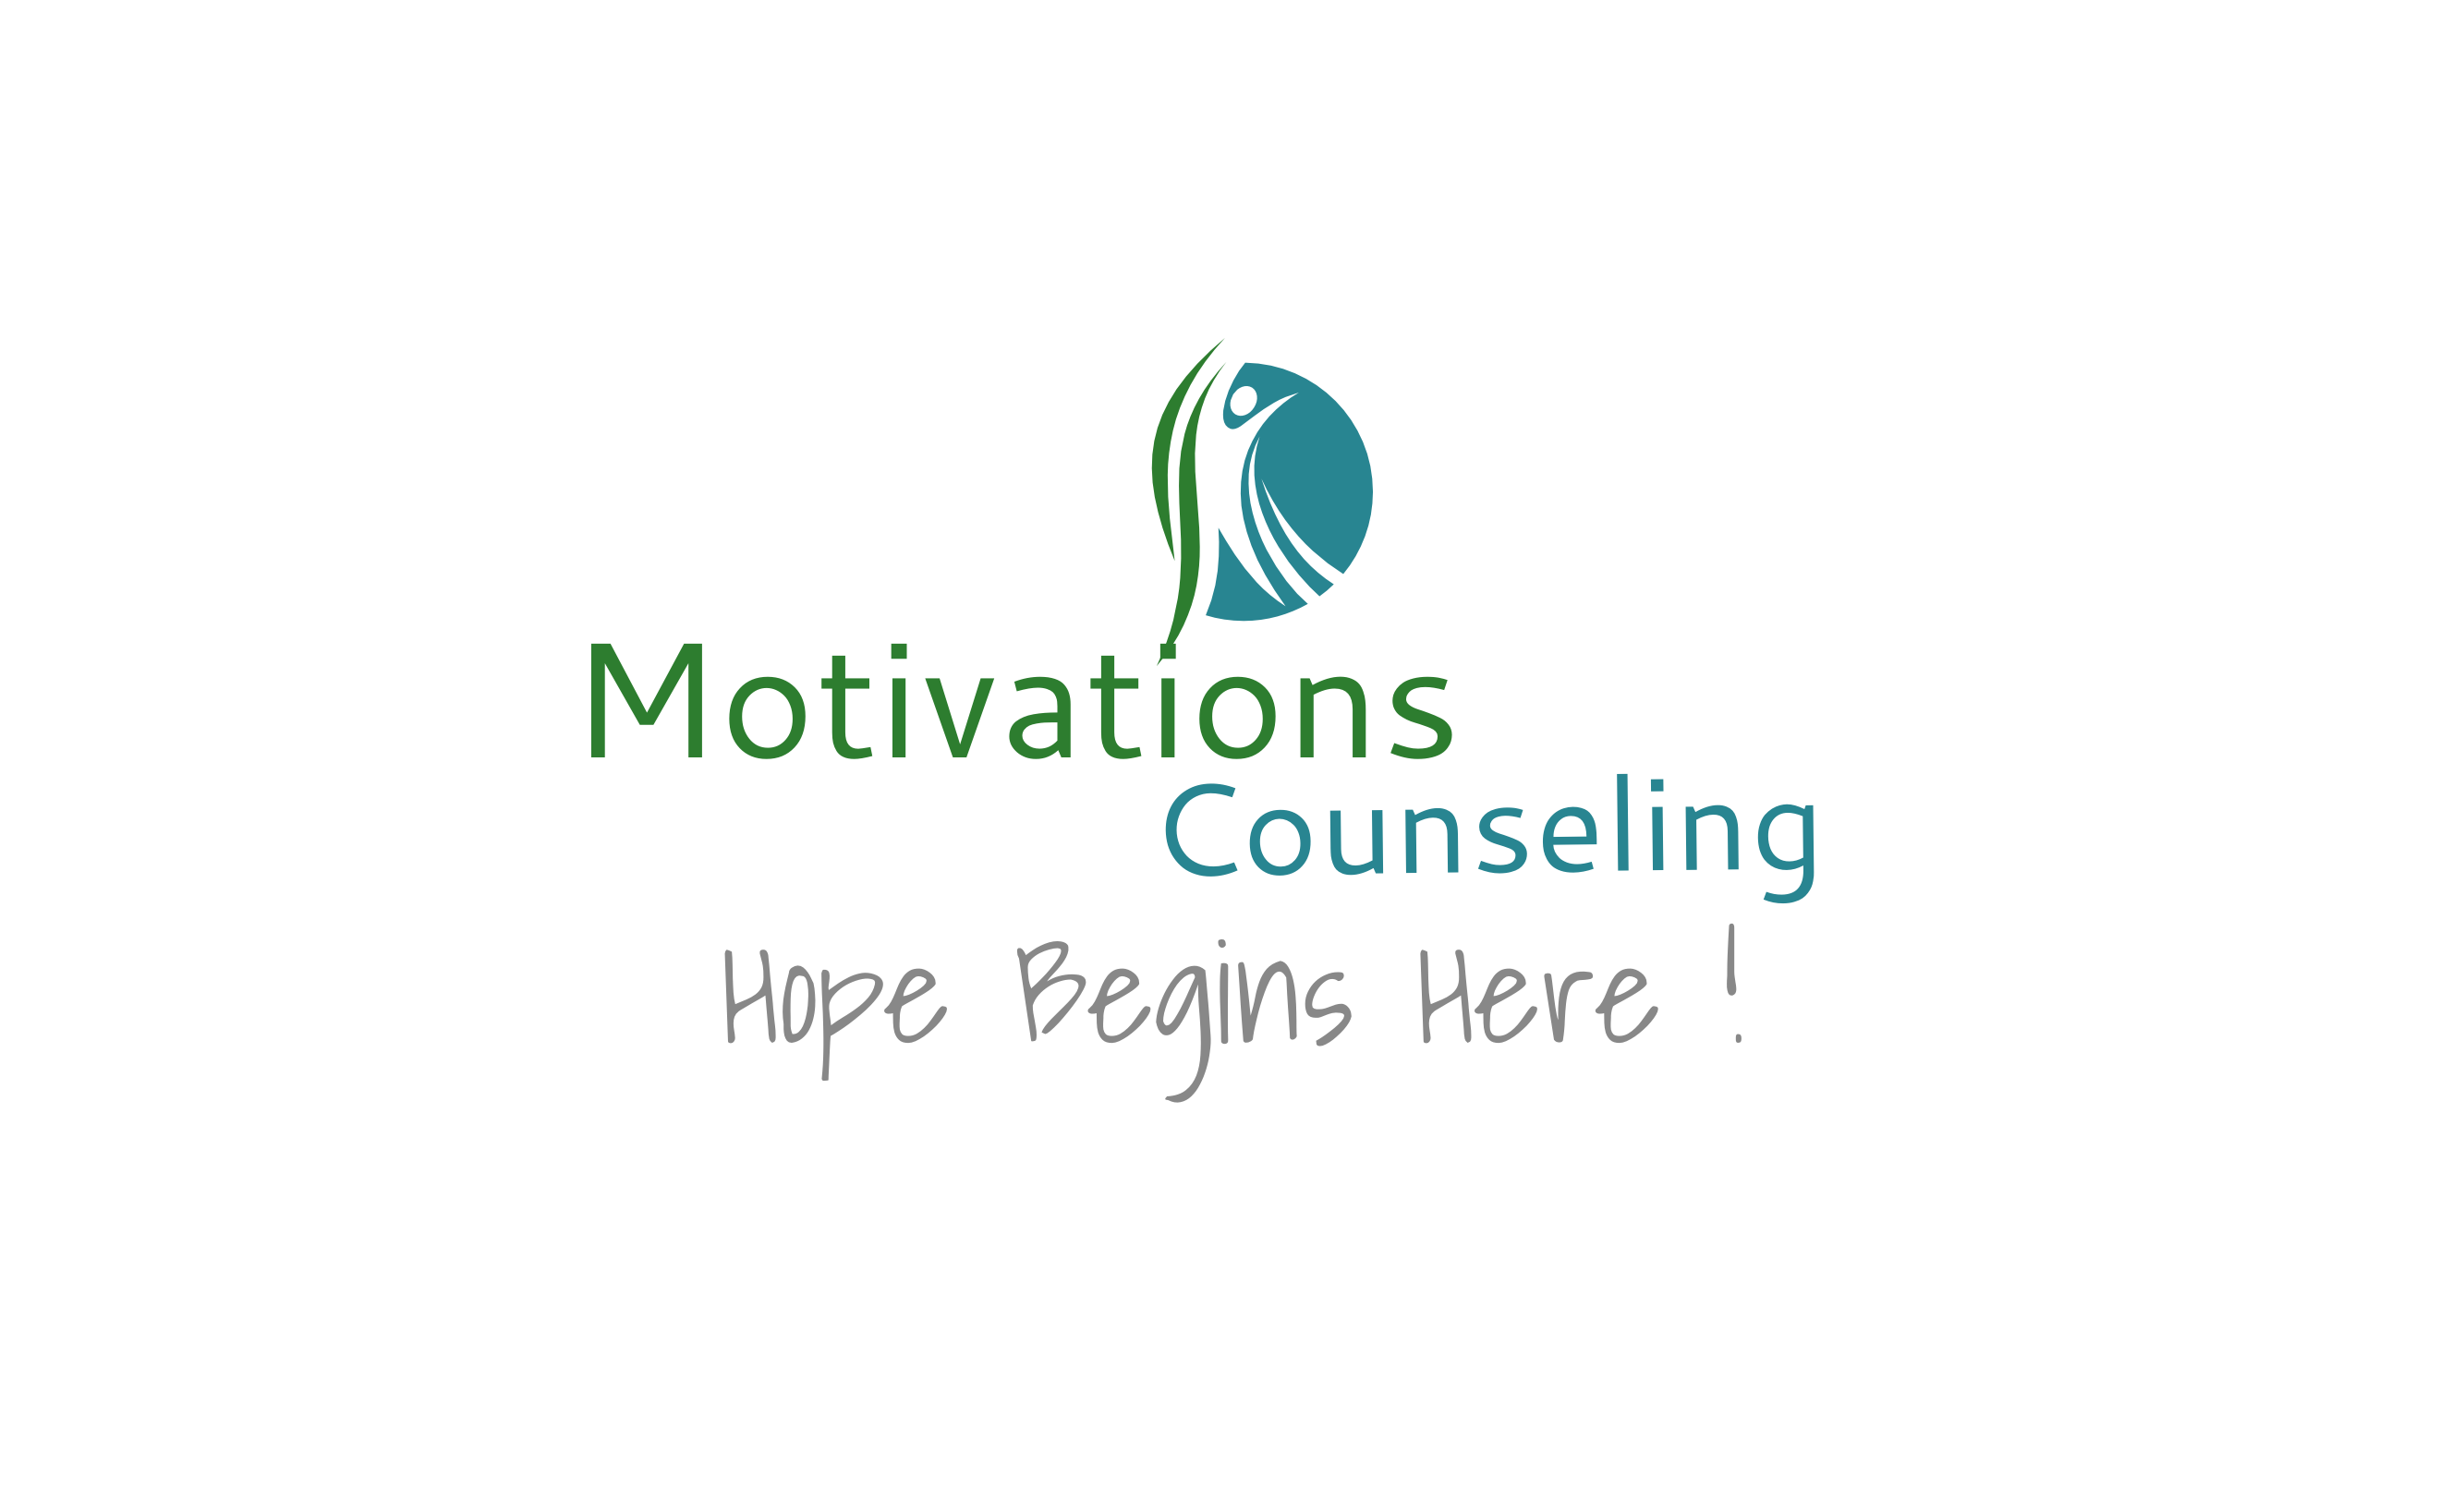 Motivations Counseling